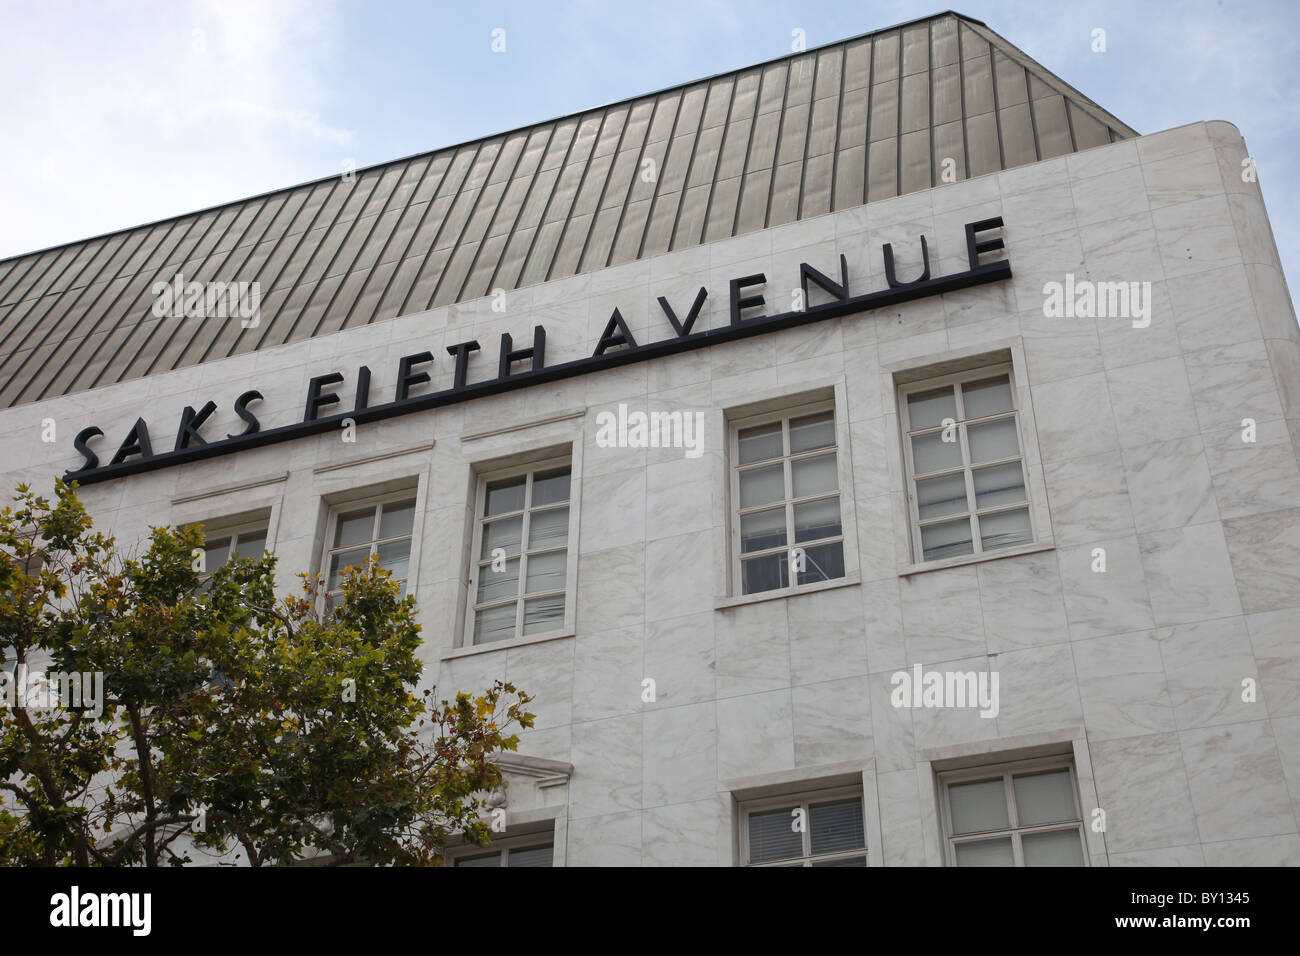 SAKS FIFTH AVENUE BEVERLY HILLS 9600 WILSHIRE BLVD BEVERLY HILLS CALIFONIA  USA BEVERLY HILLS STORE 01 August 2010 cbcaf91a439a